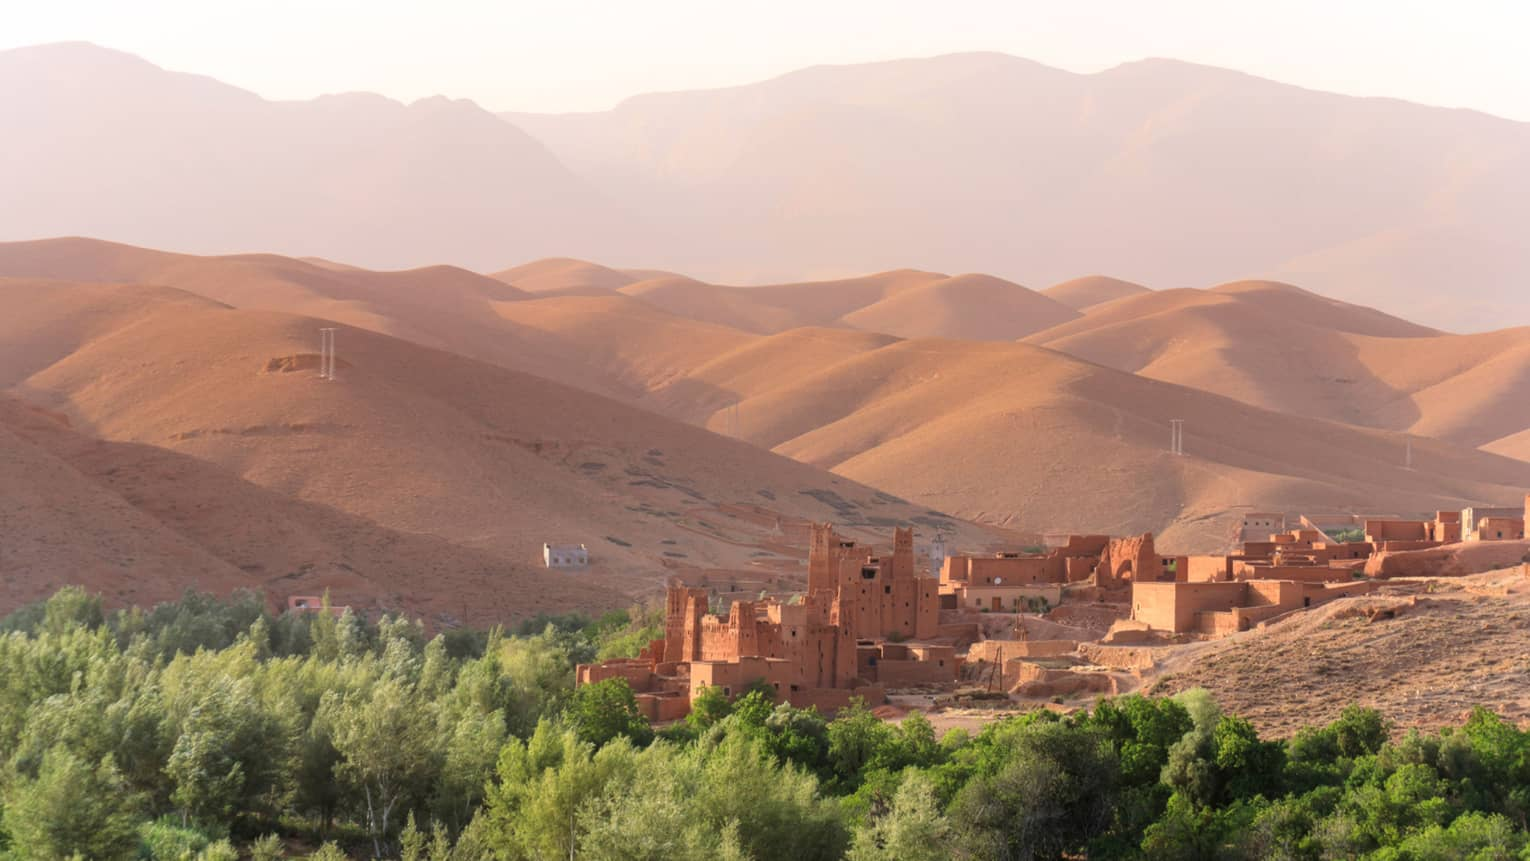 Looking down at Berber villages buildings past green trees, in front of sand dunes